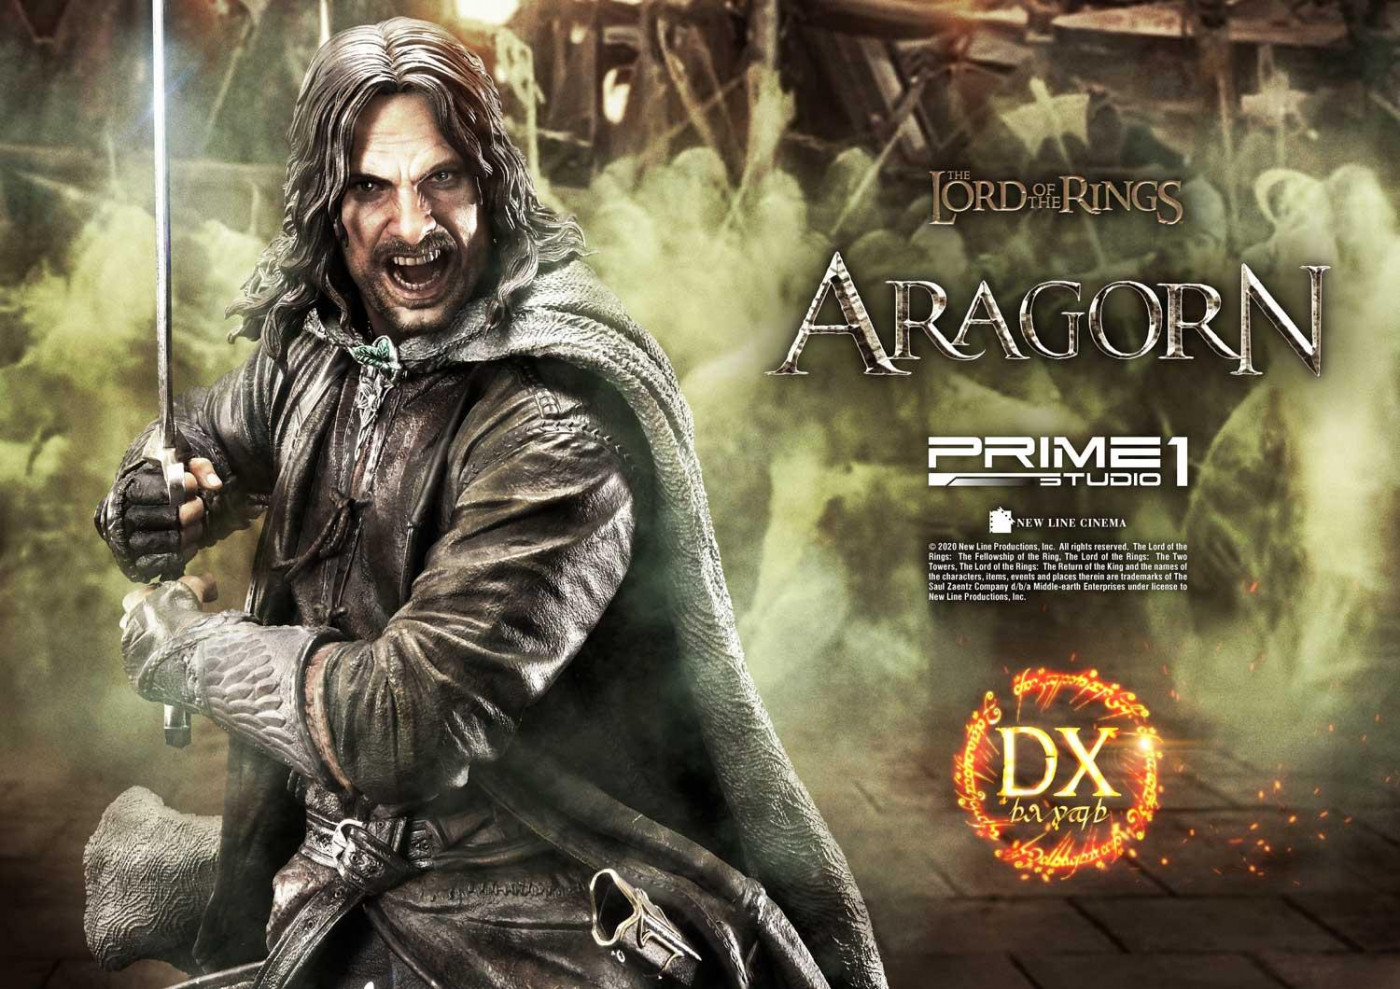 Premium Masterline The Lord of the Rings: The Return of the King (Film) Aragorn Deluxe Version